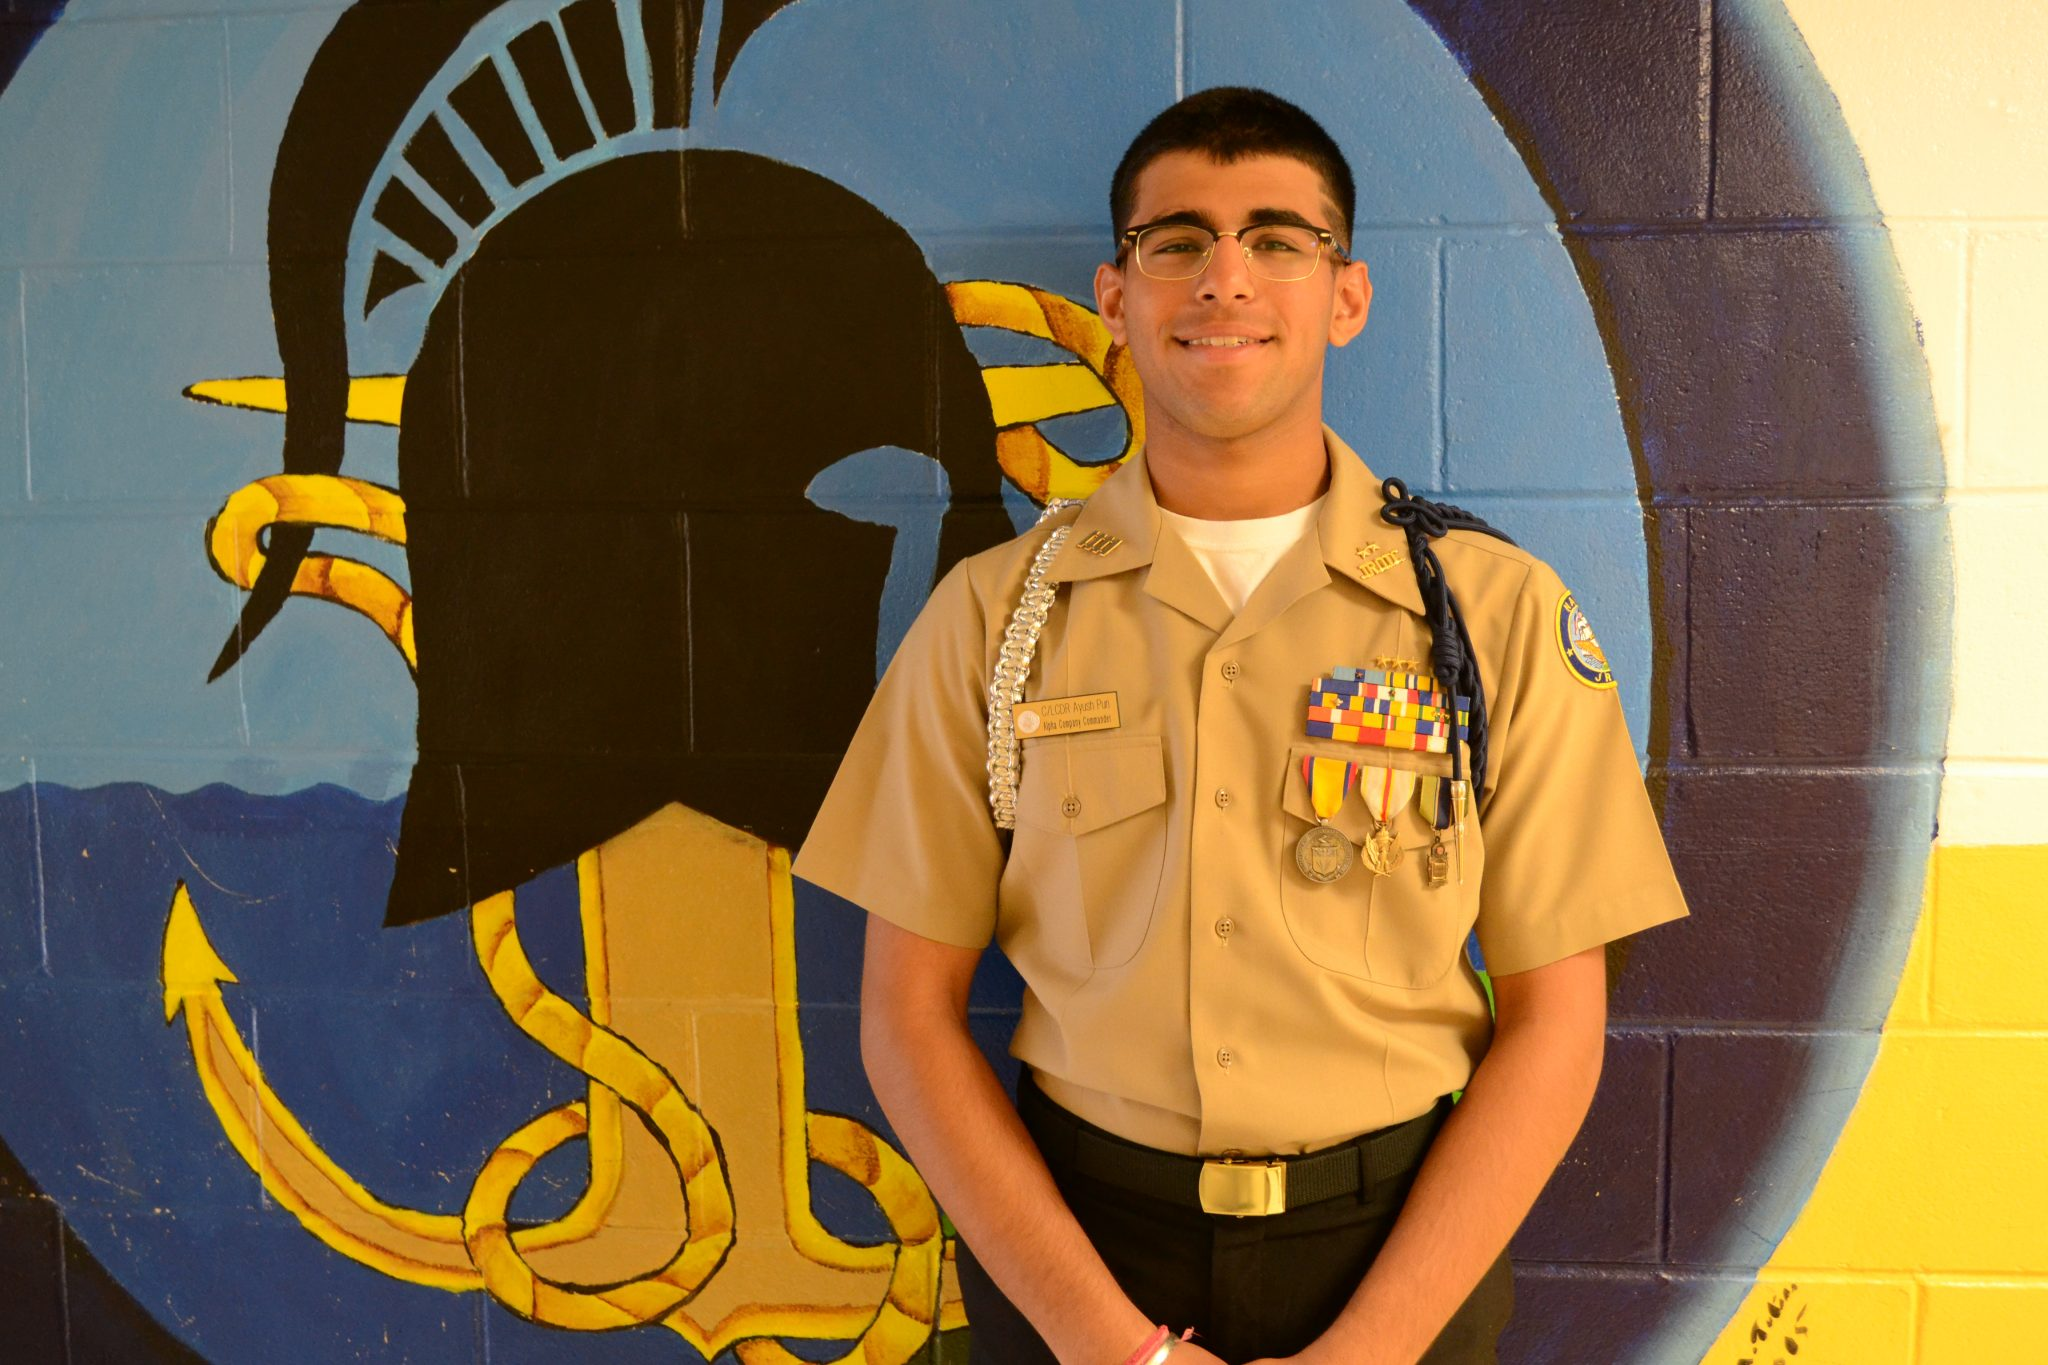 Ayush Puri awarded scholarship to attend Naval Academy - The